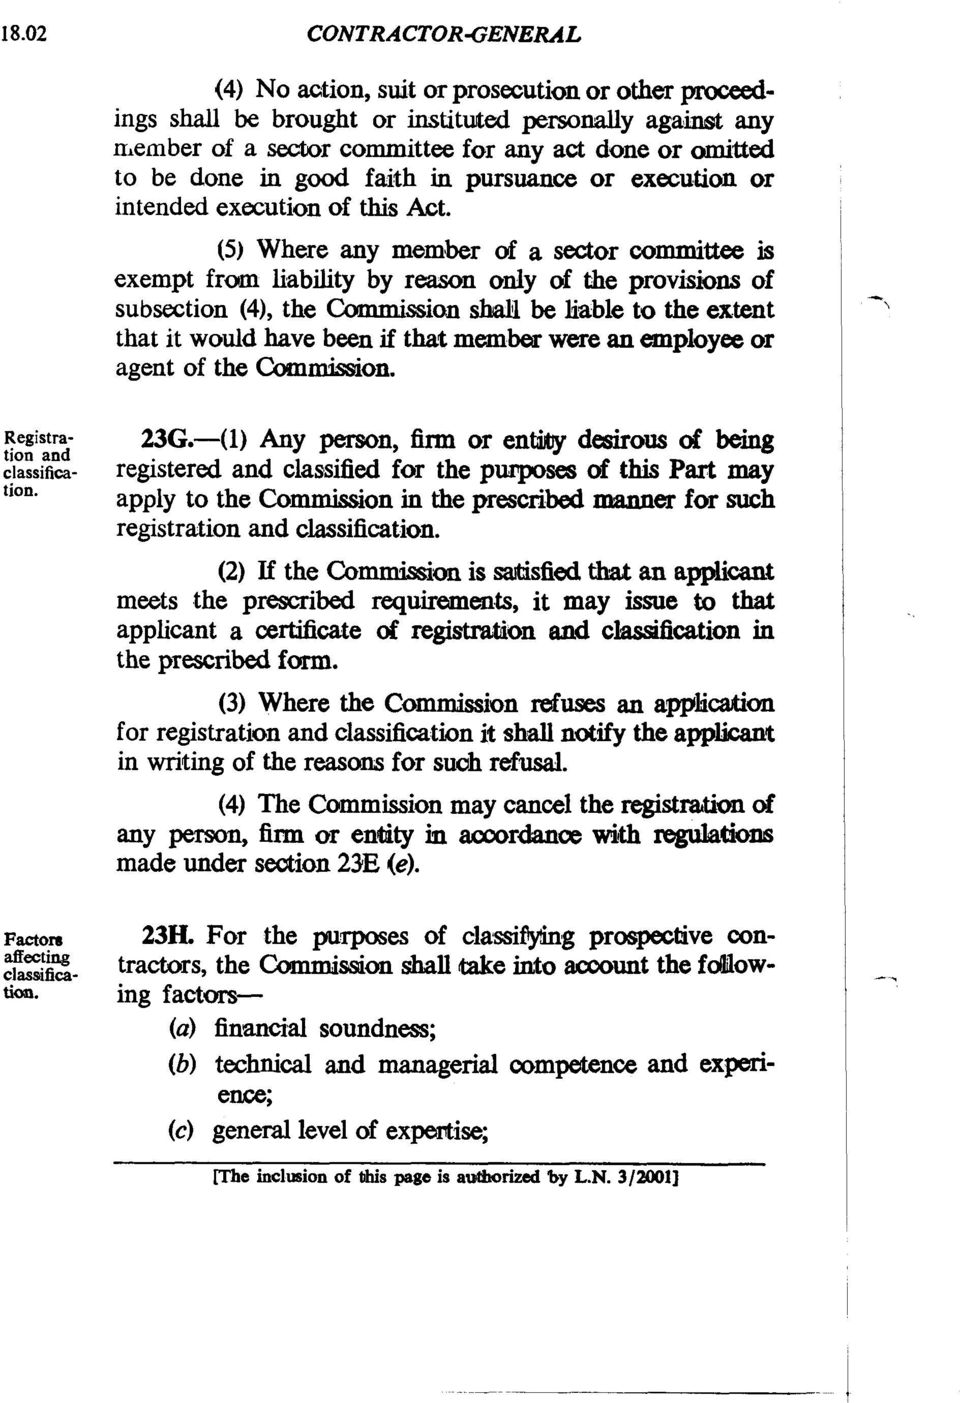 (5) Where any member of a sector committee is exempt from liability by reason only of the provisions of subsection (4), the Canmission shall be liable to the extent that it would have been if that